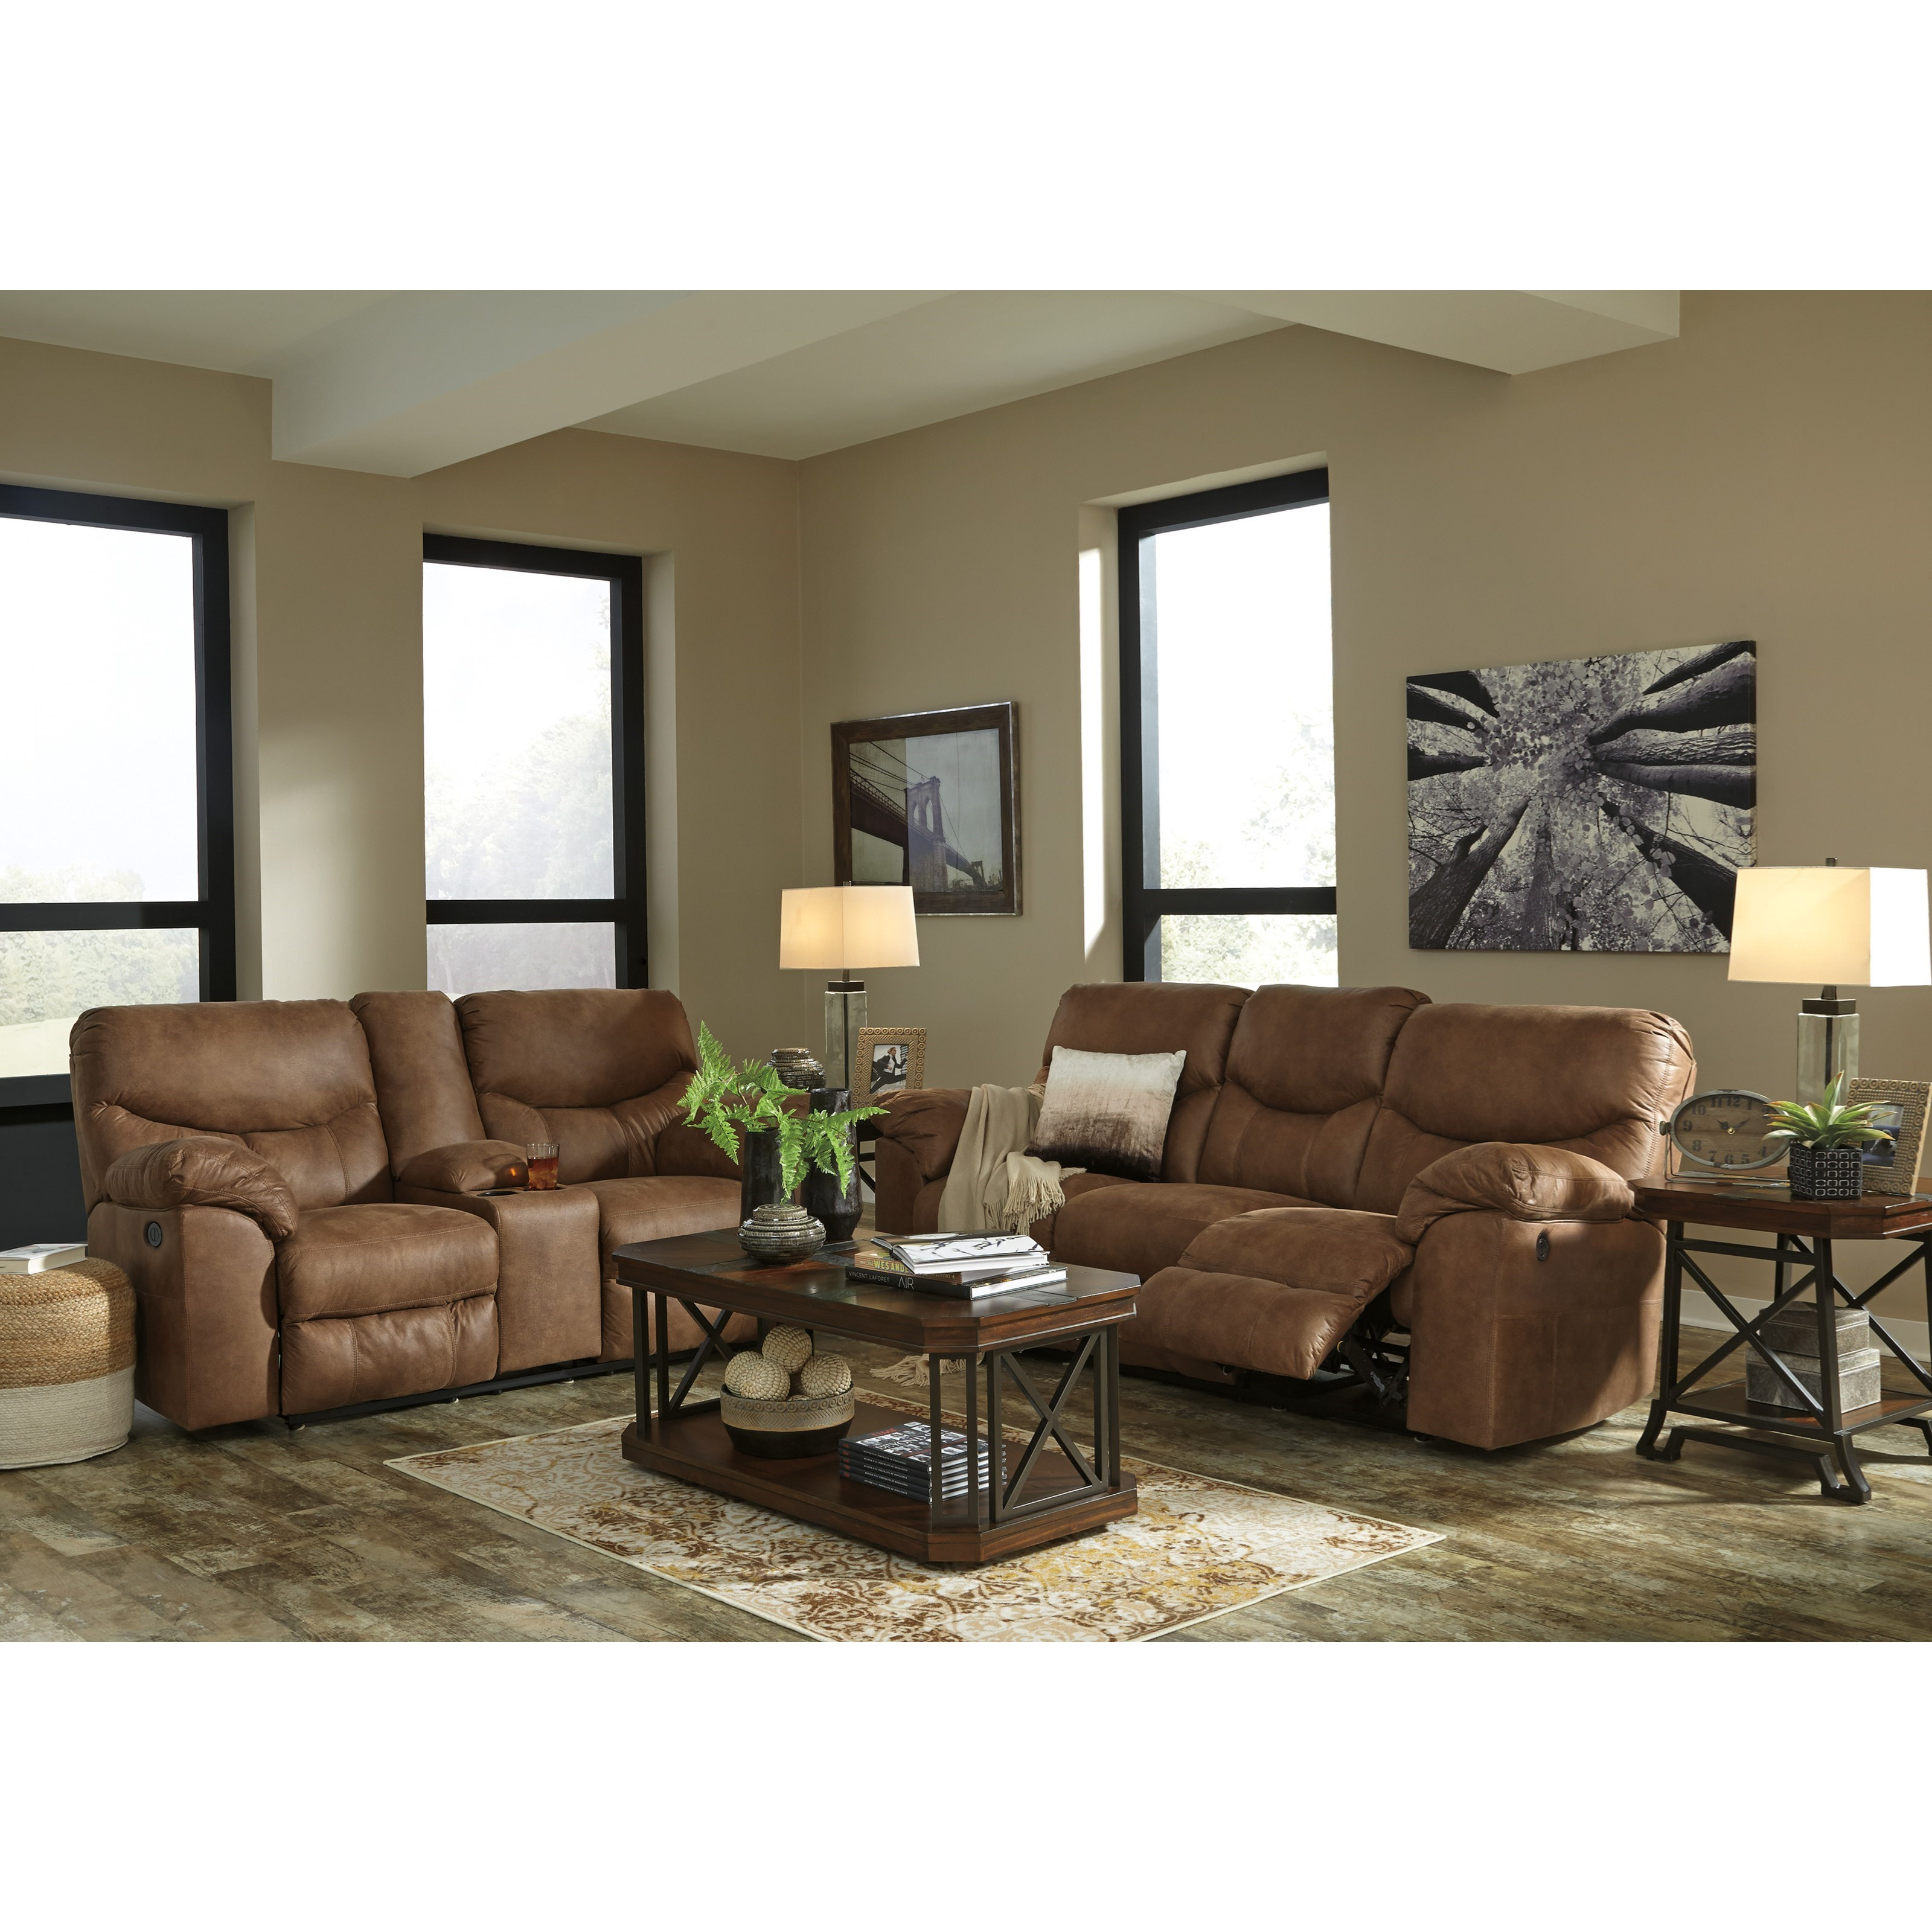 All Room Furniture: Signature Design By Ashley Boxberg Reclining Living Room